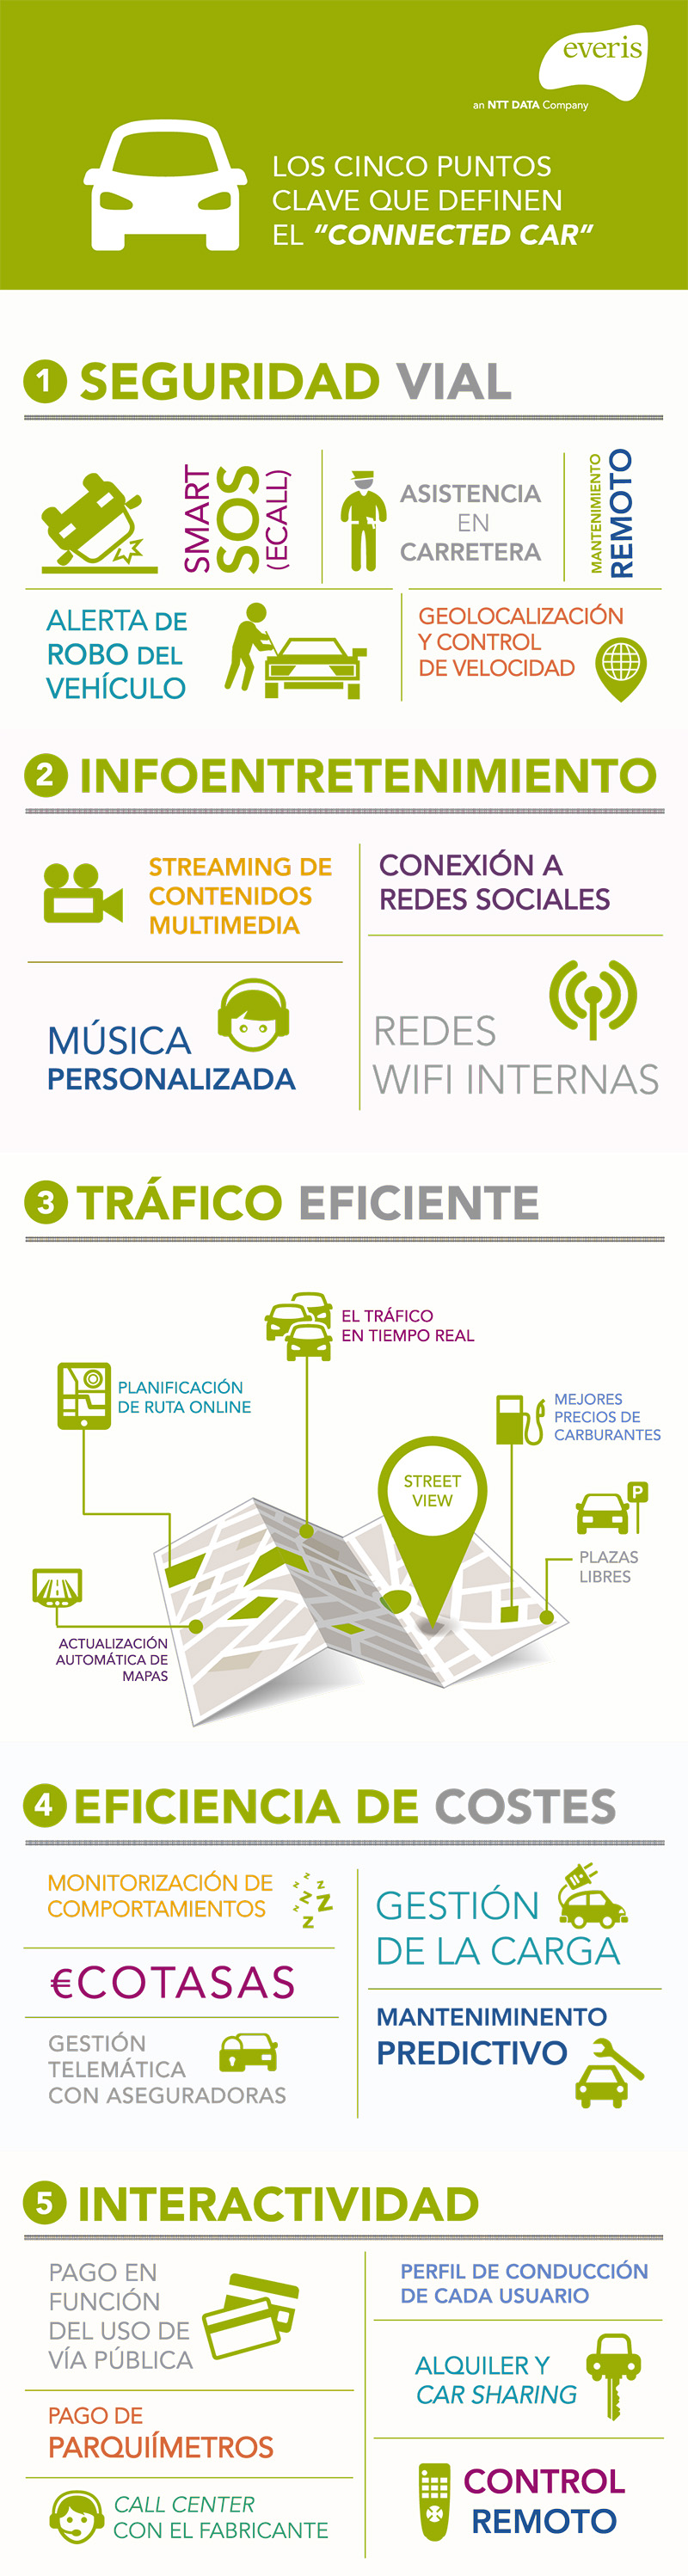 Infografía_connected_car-1